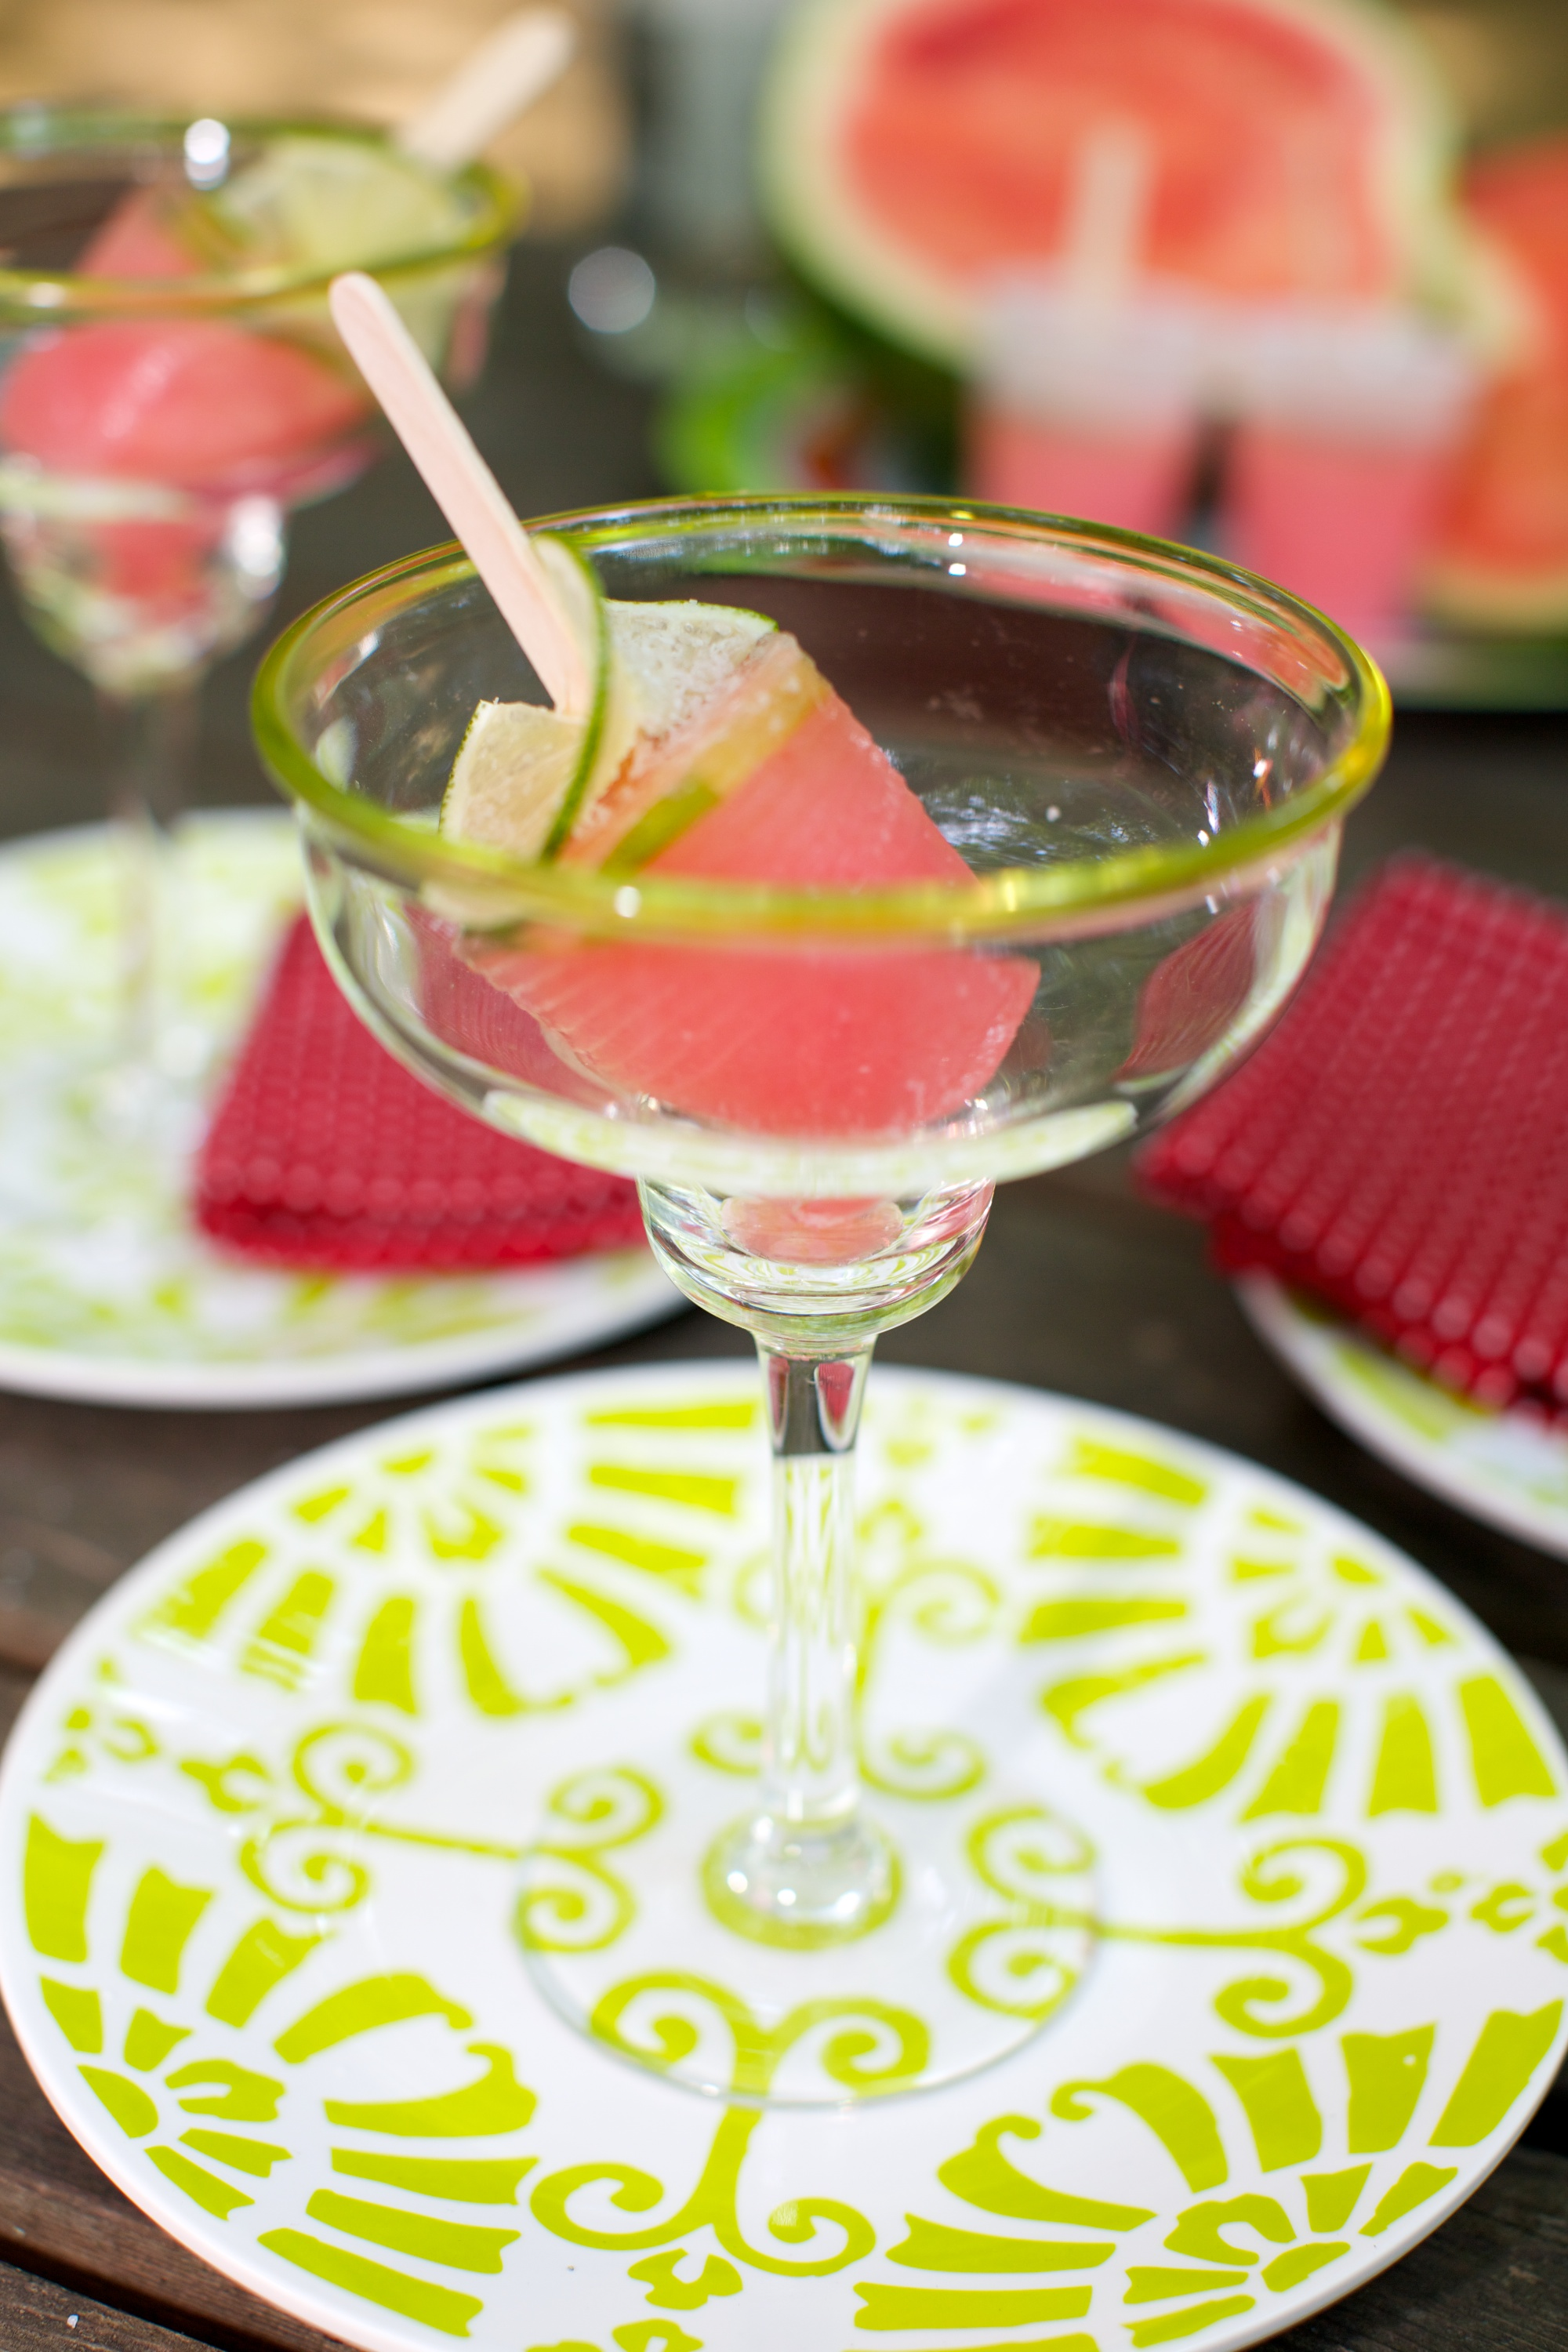 For your next Girls Night party, make my Watermelon Margarita pops and serve in a pretty glass with a shot of chilled tequila over the top.